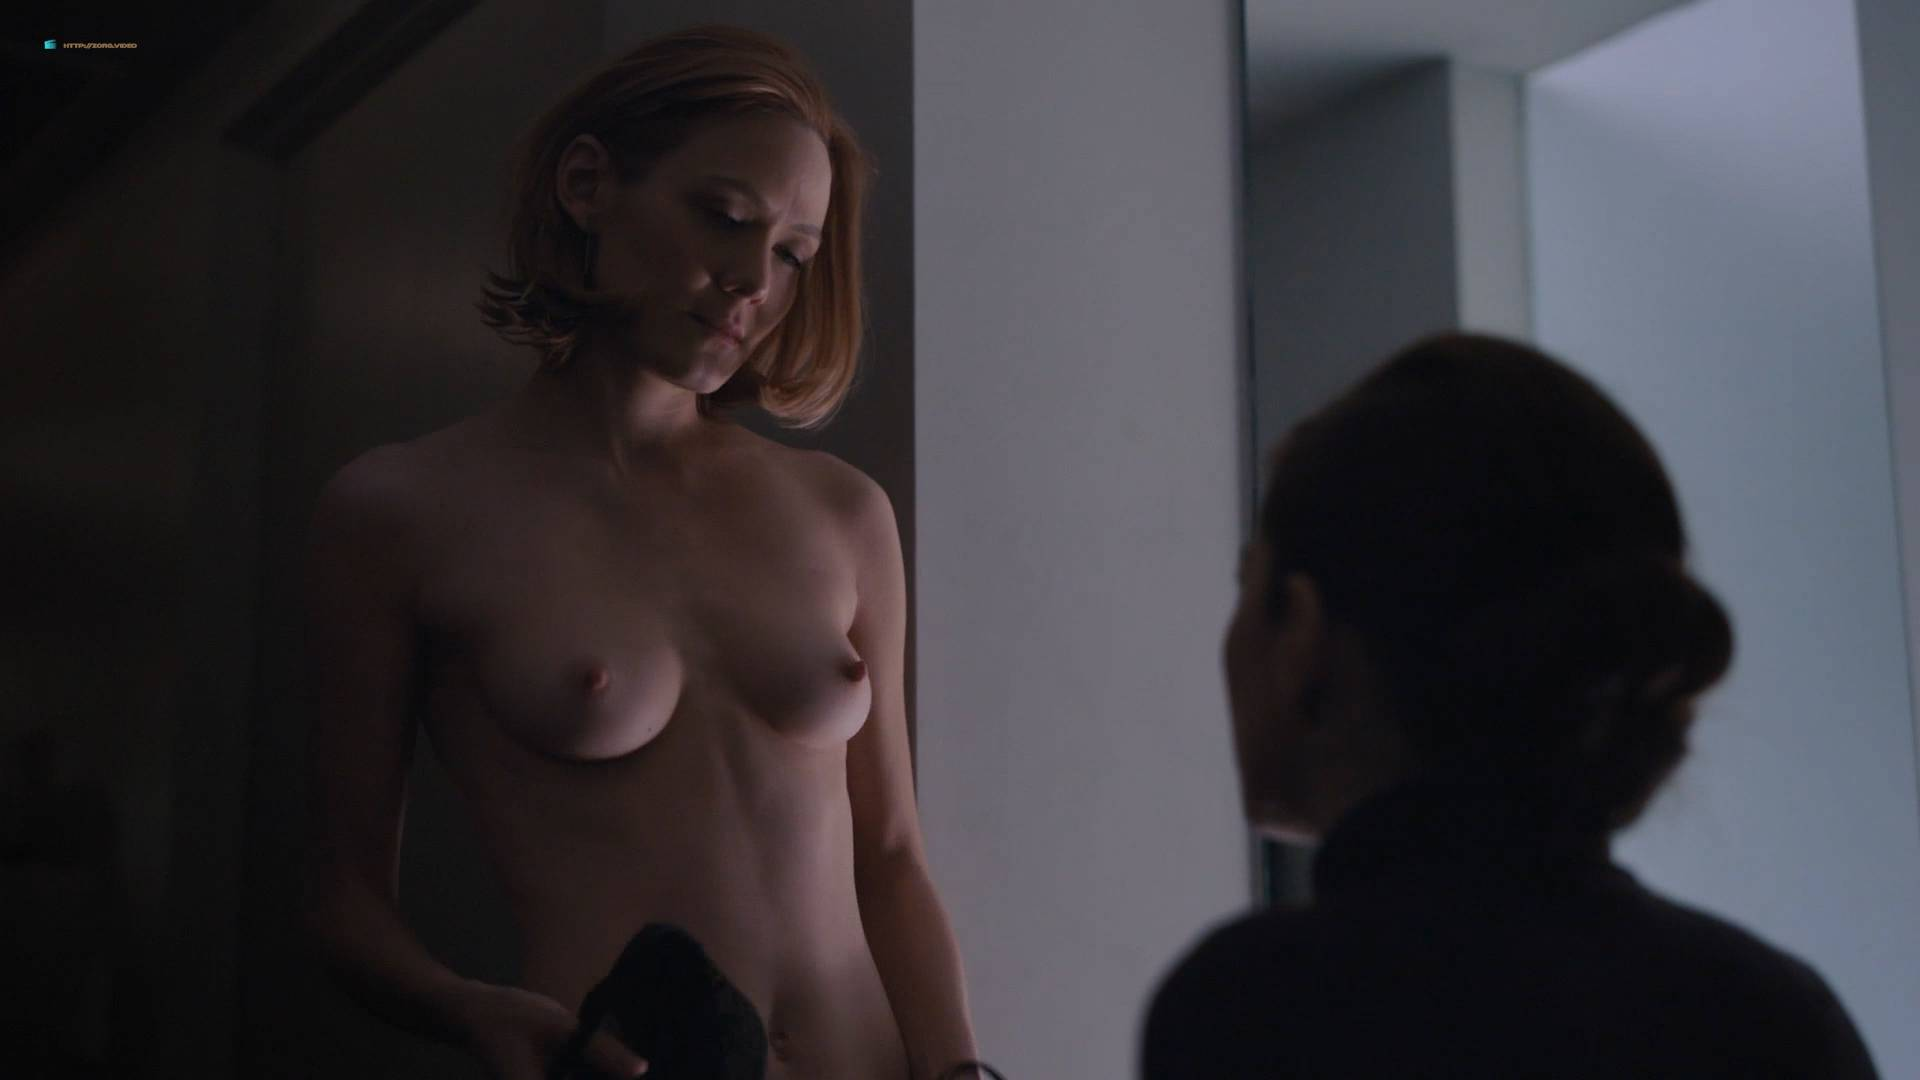 Anna-Friel-nude-and-lesbian-sex-with-Louisa-Krause-The-Girlfriend-Experience-2017-s2e3-HD-1080p-Web-03.jpg